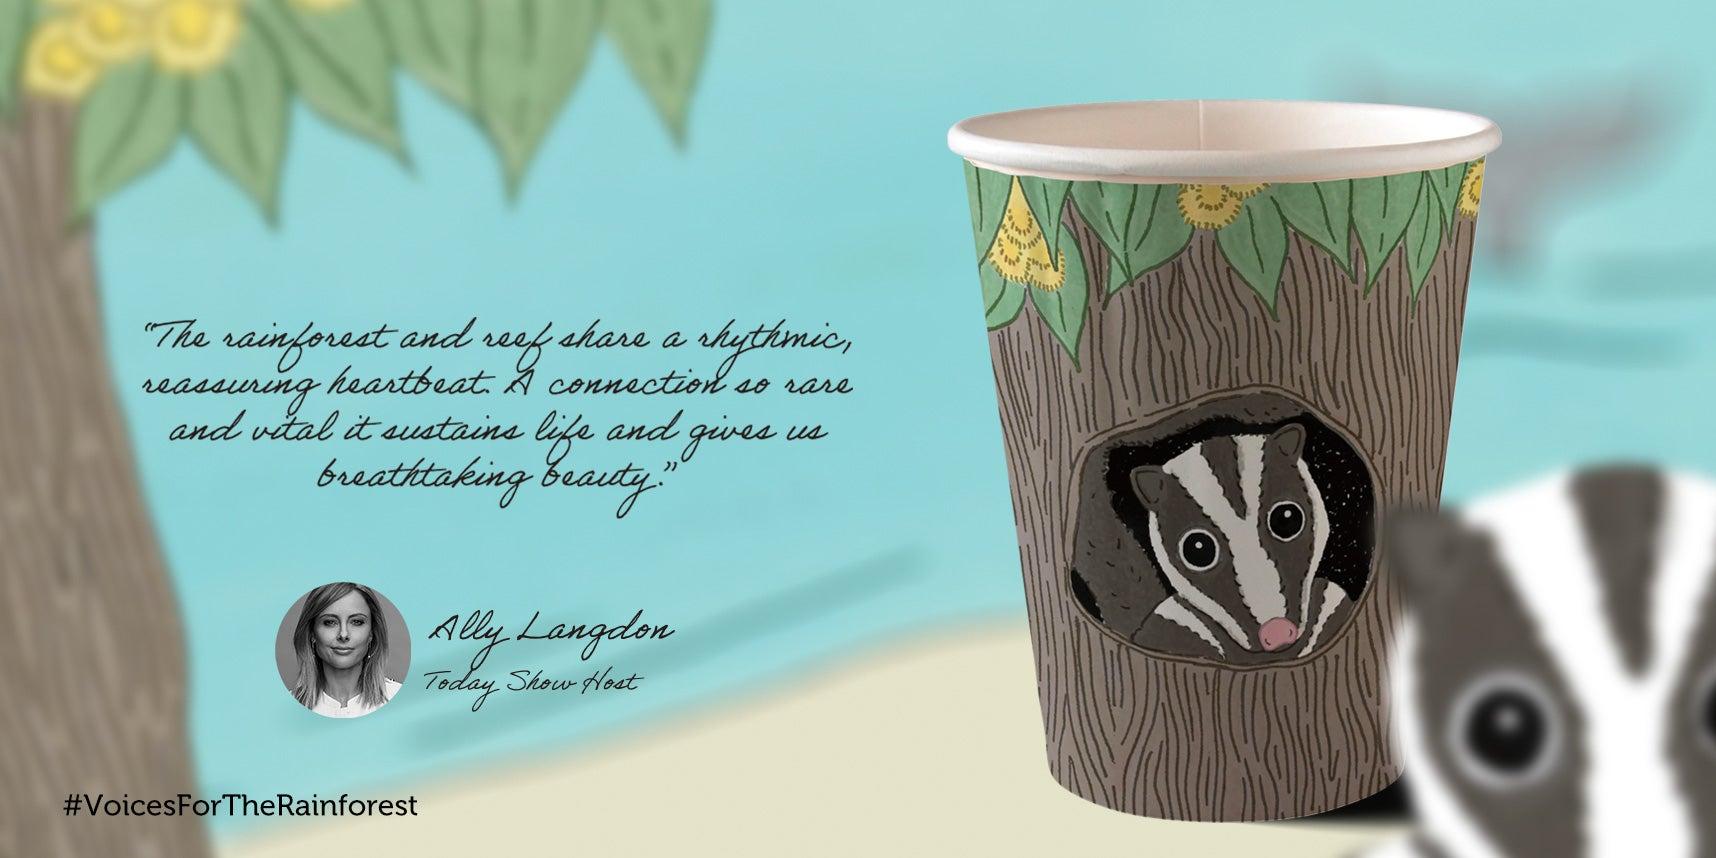 Ally Langdon paper cup design